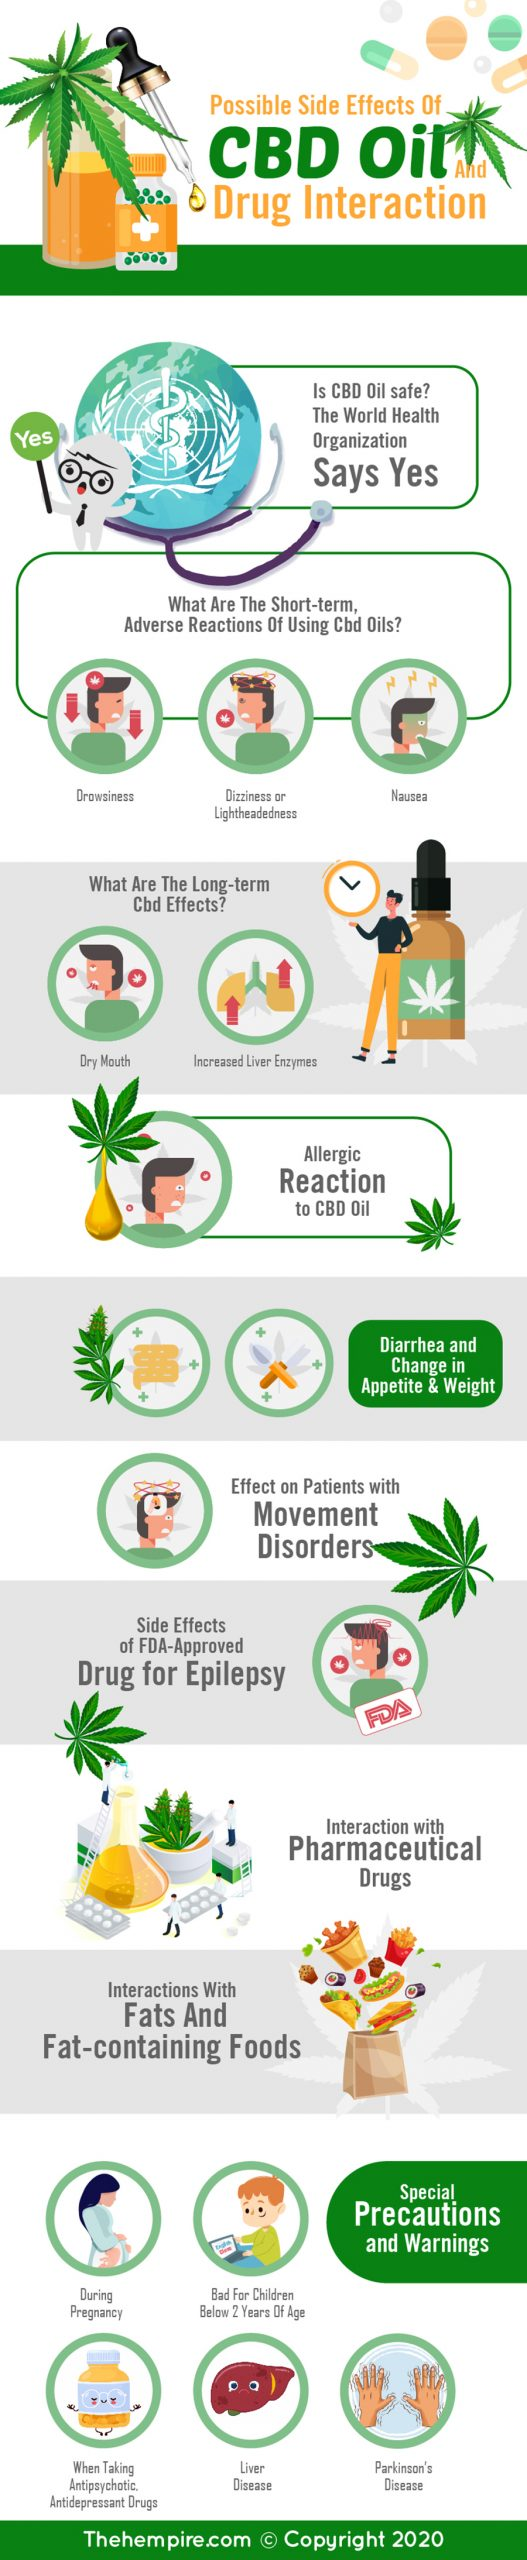 Possible-Side-Effects-Of-CBD-Oil-the-hempire-scaled.